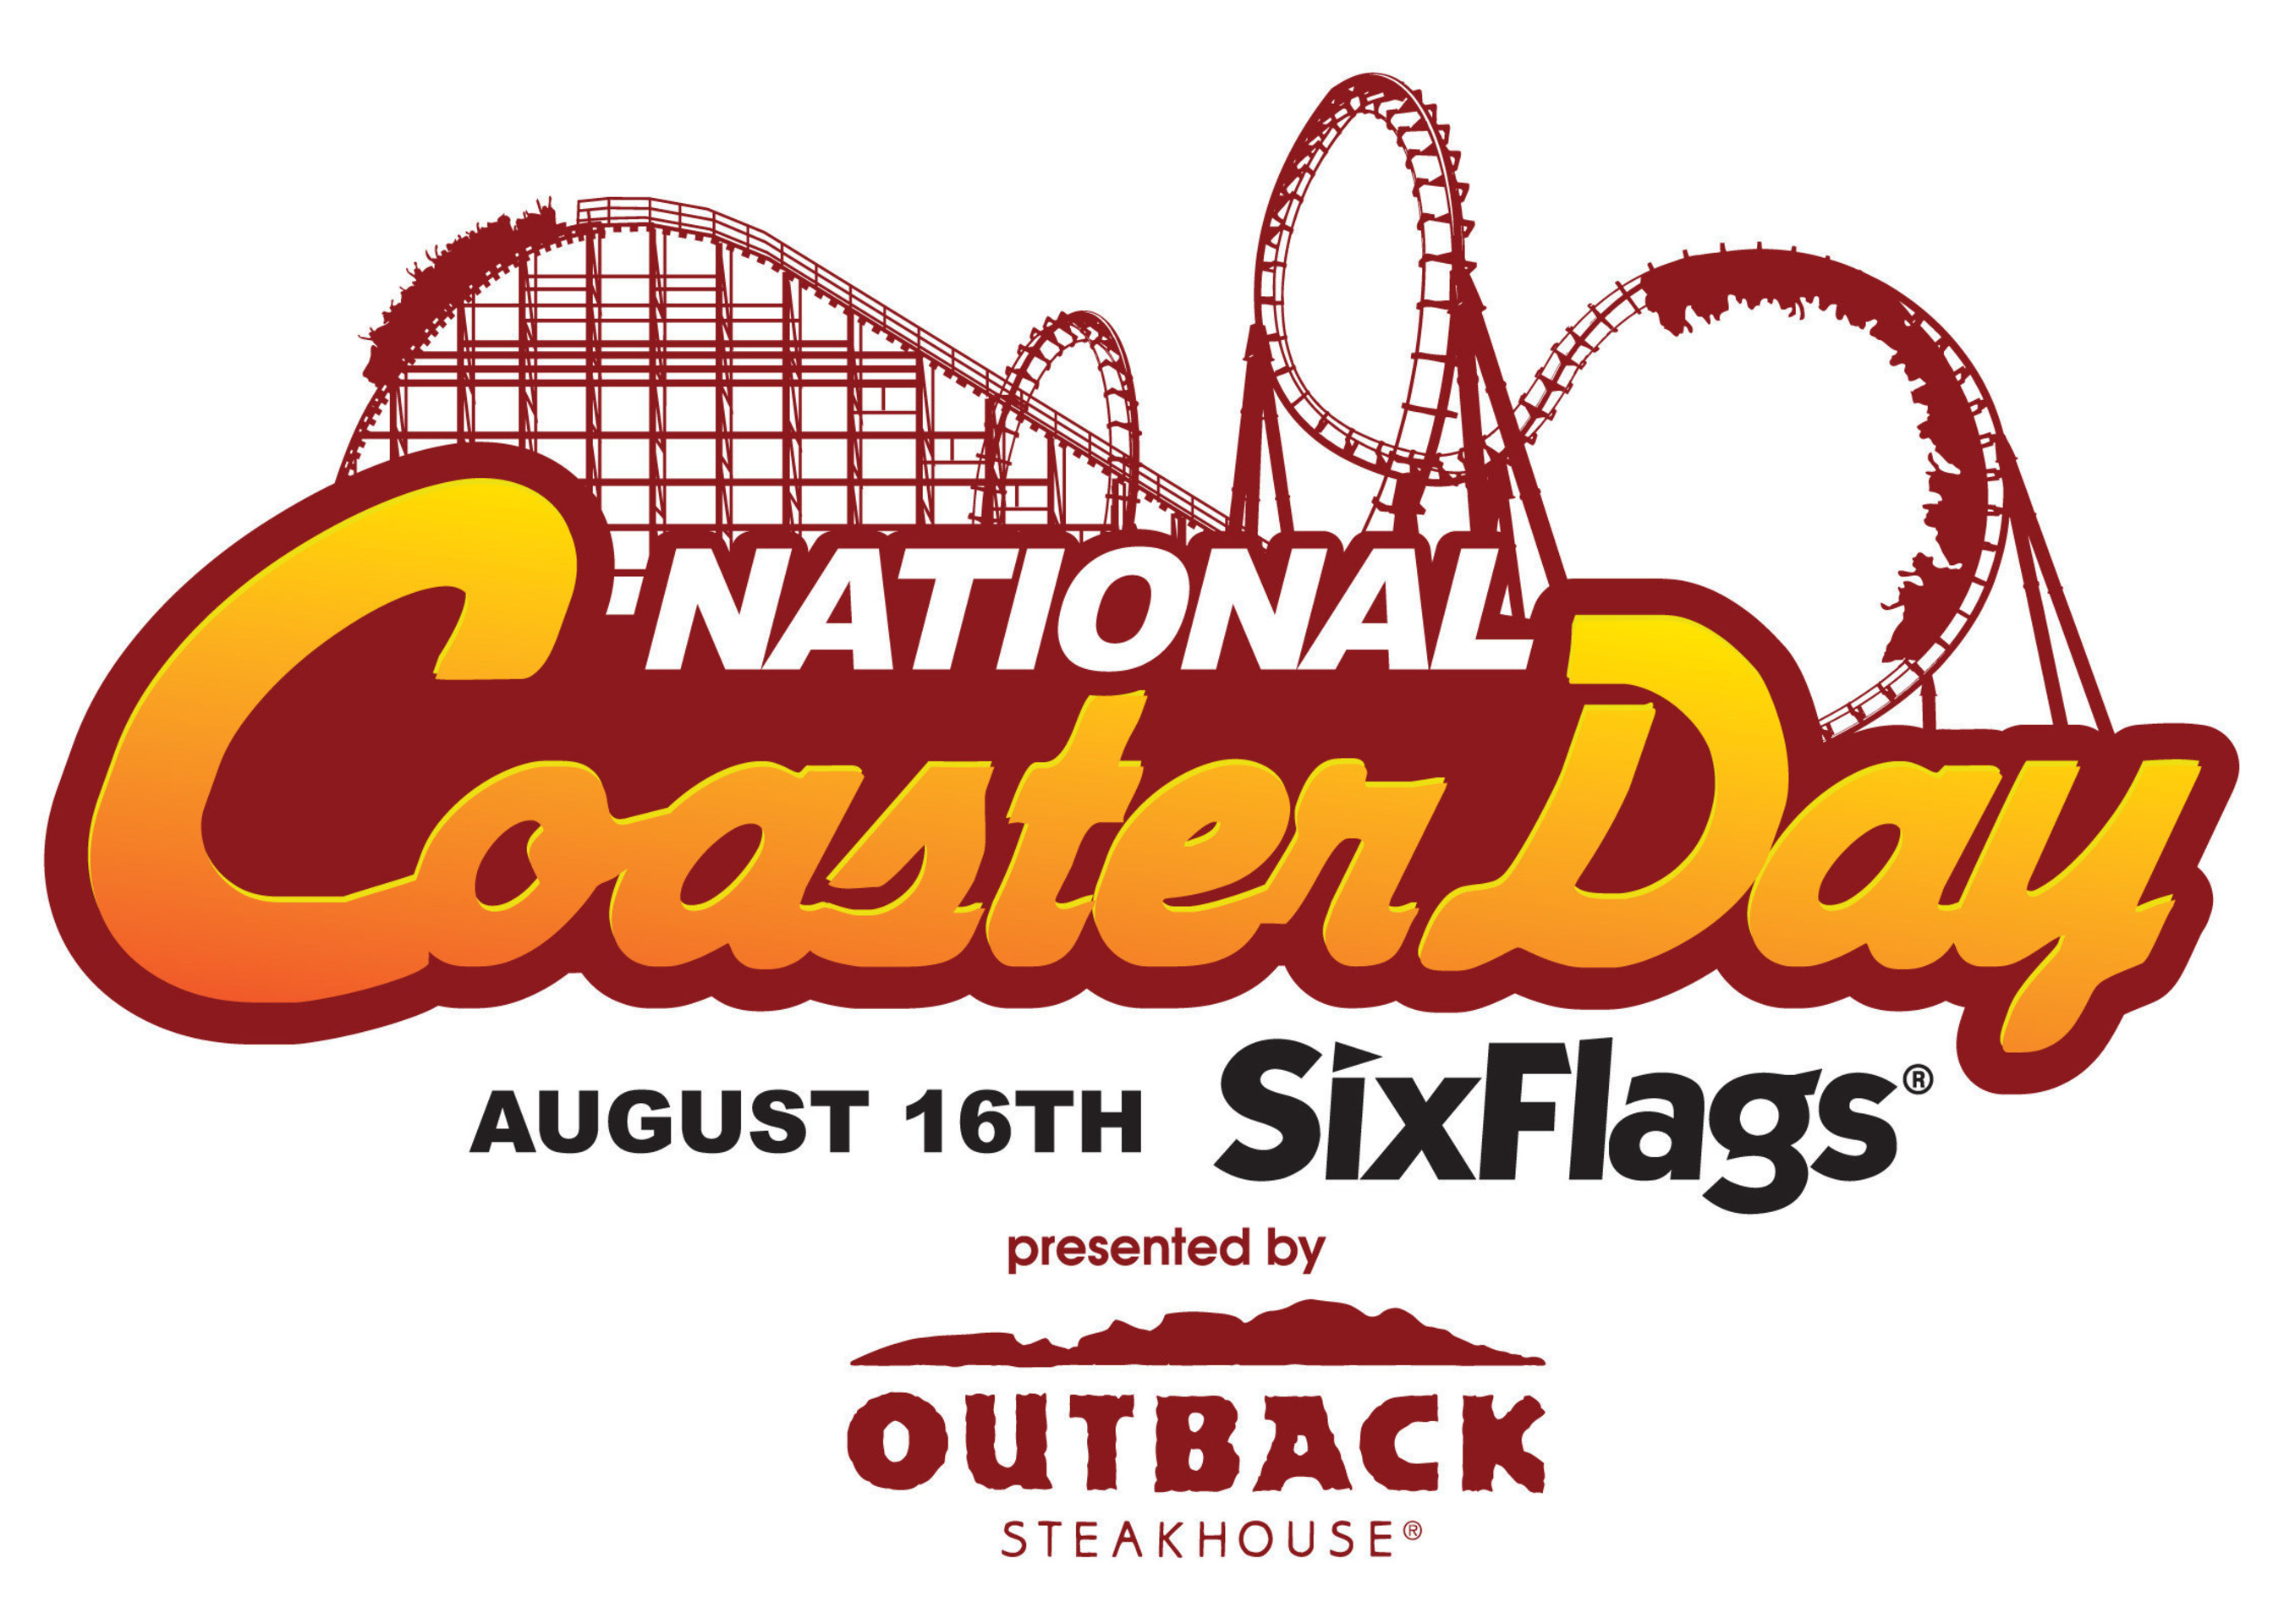 Six Flags Theme Parks celebrate National Coaster Day